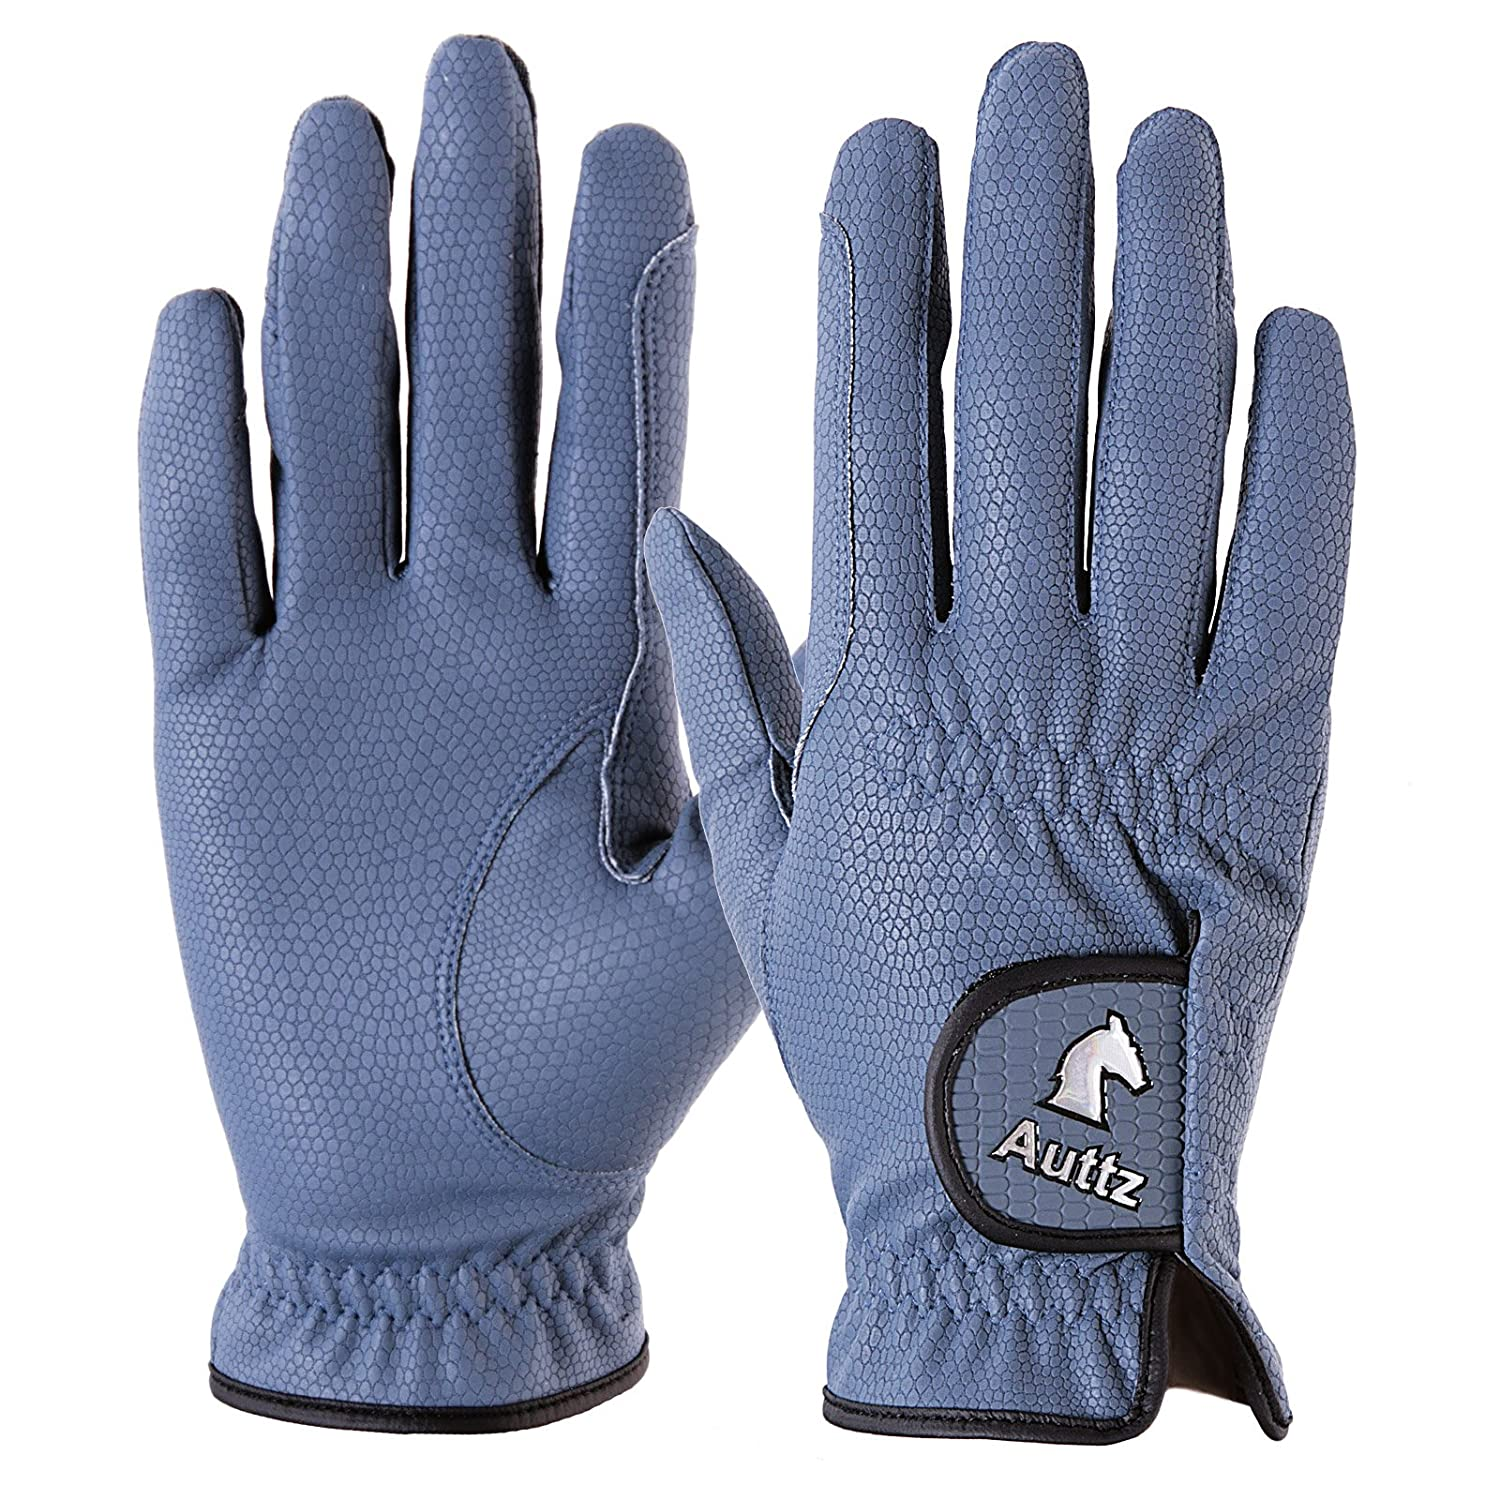 KMG Auttz Equestrian Horse Riding Gloves Synthetic Leather (Blue, 8 inches)